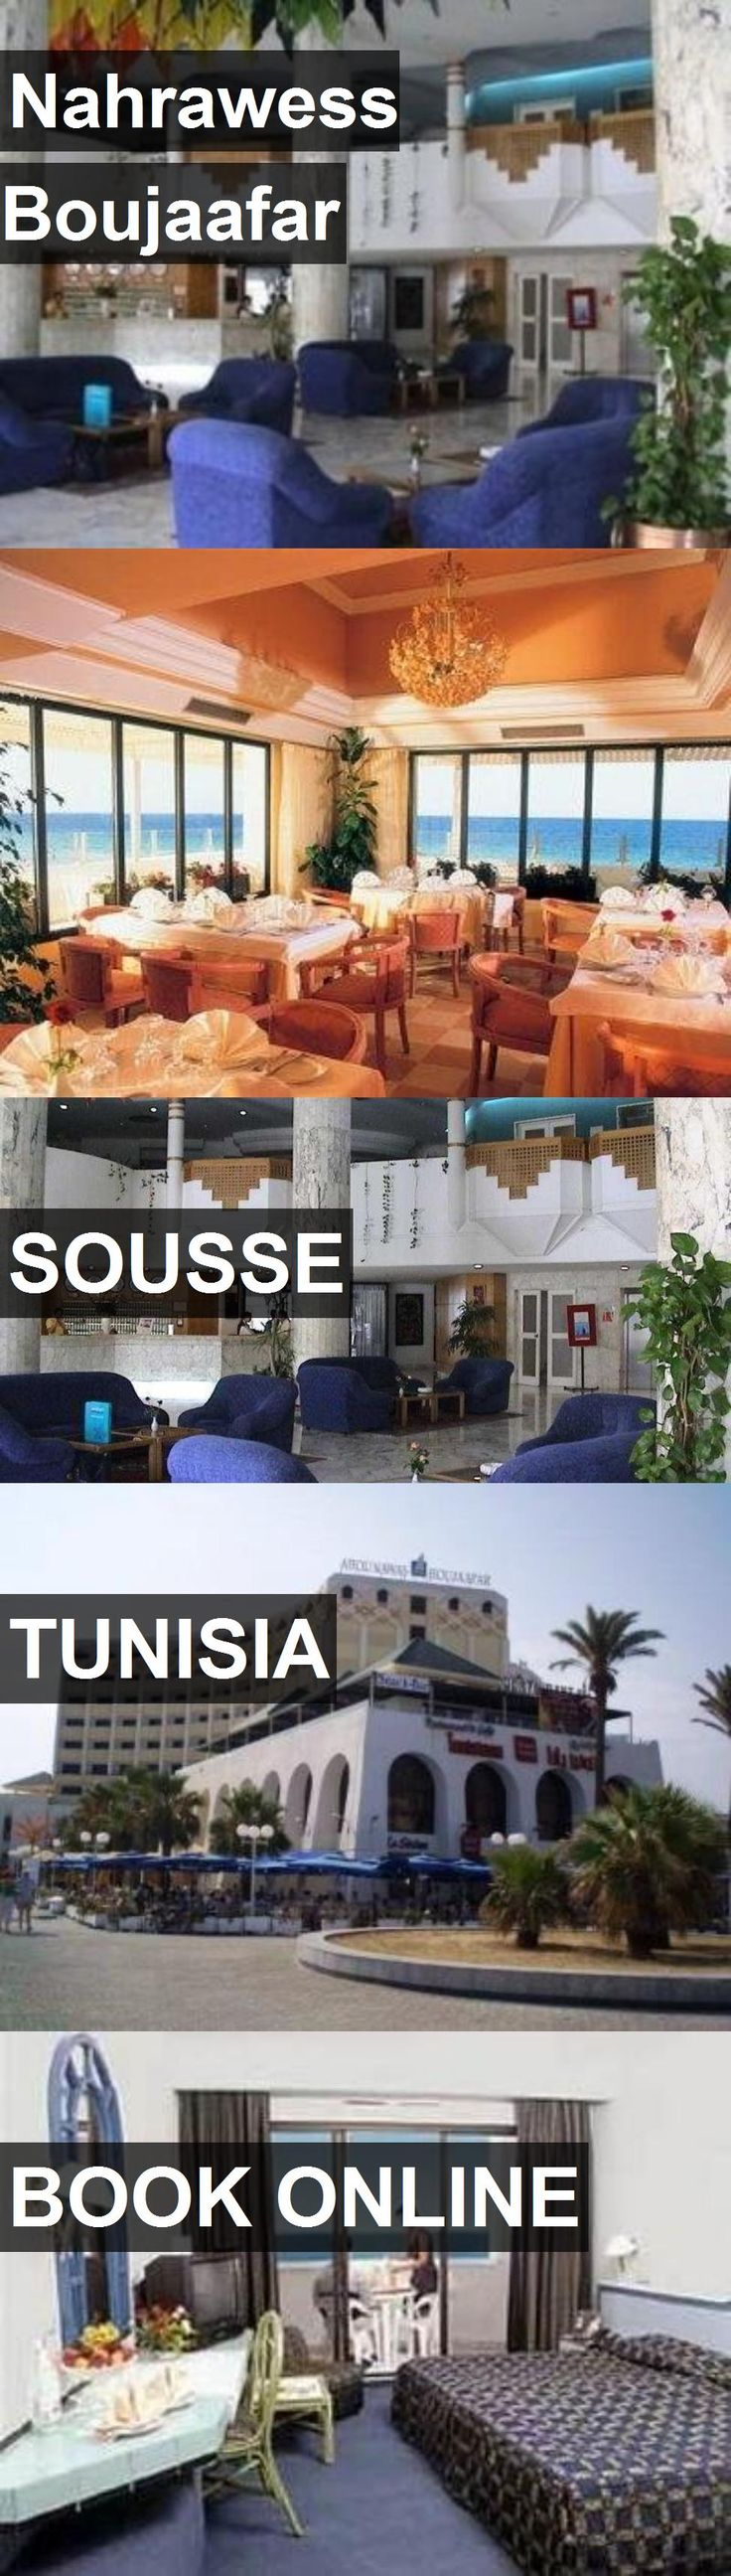 Hotel Nahrawess Boujaafar in Sousse, Tunisia. For more information, photos, reviews and best prices please follow the link. #Tunisia #Sousse #travel #vacation #hotel